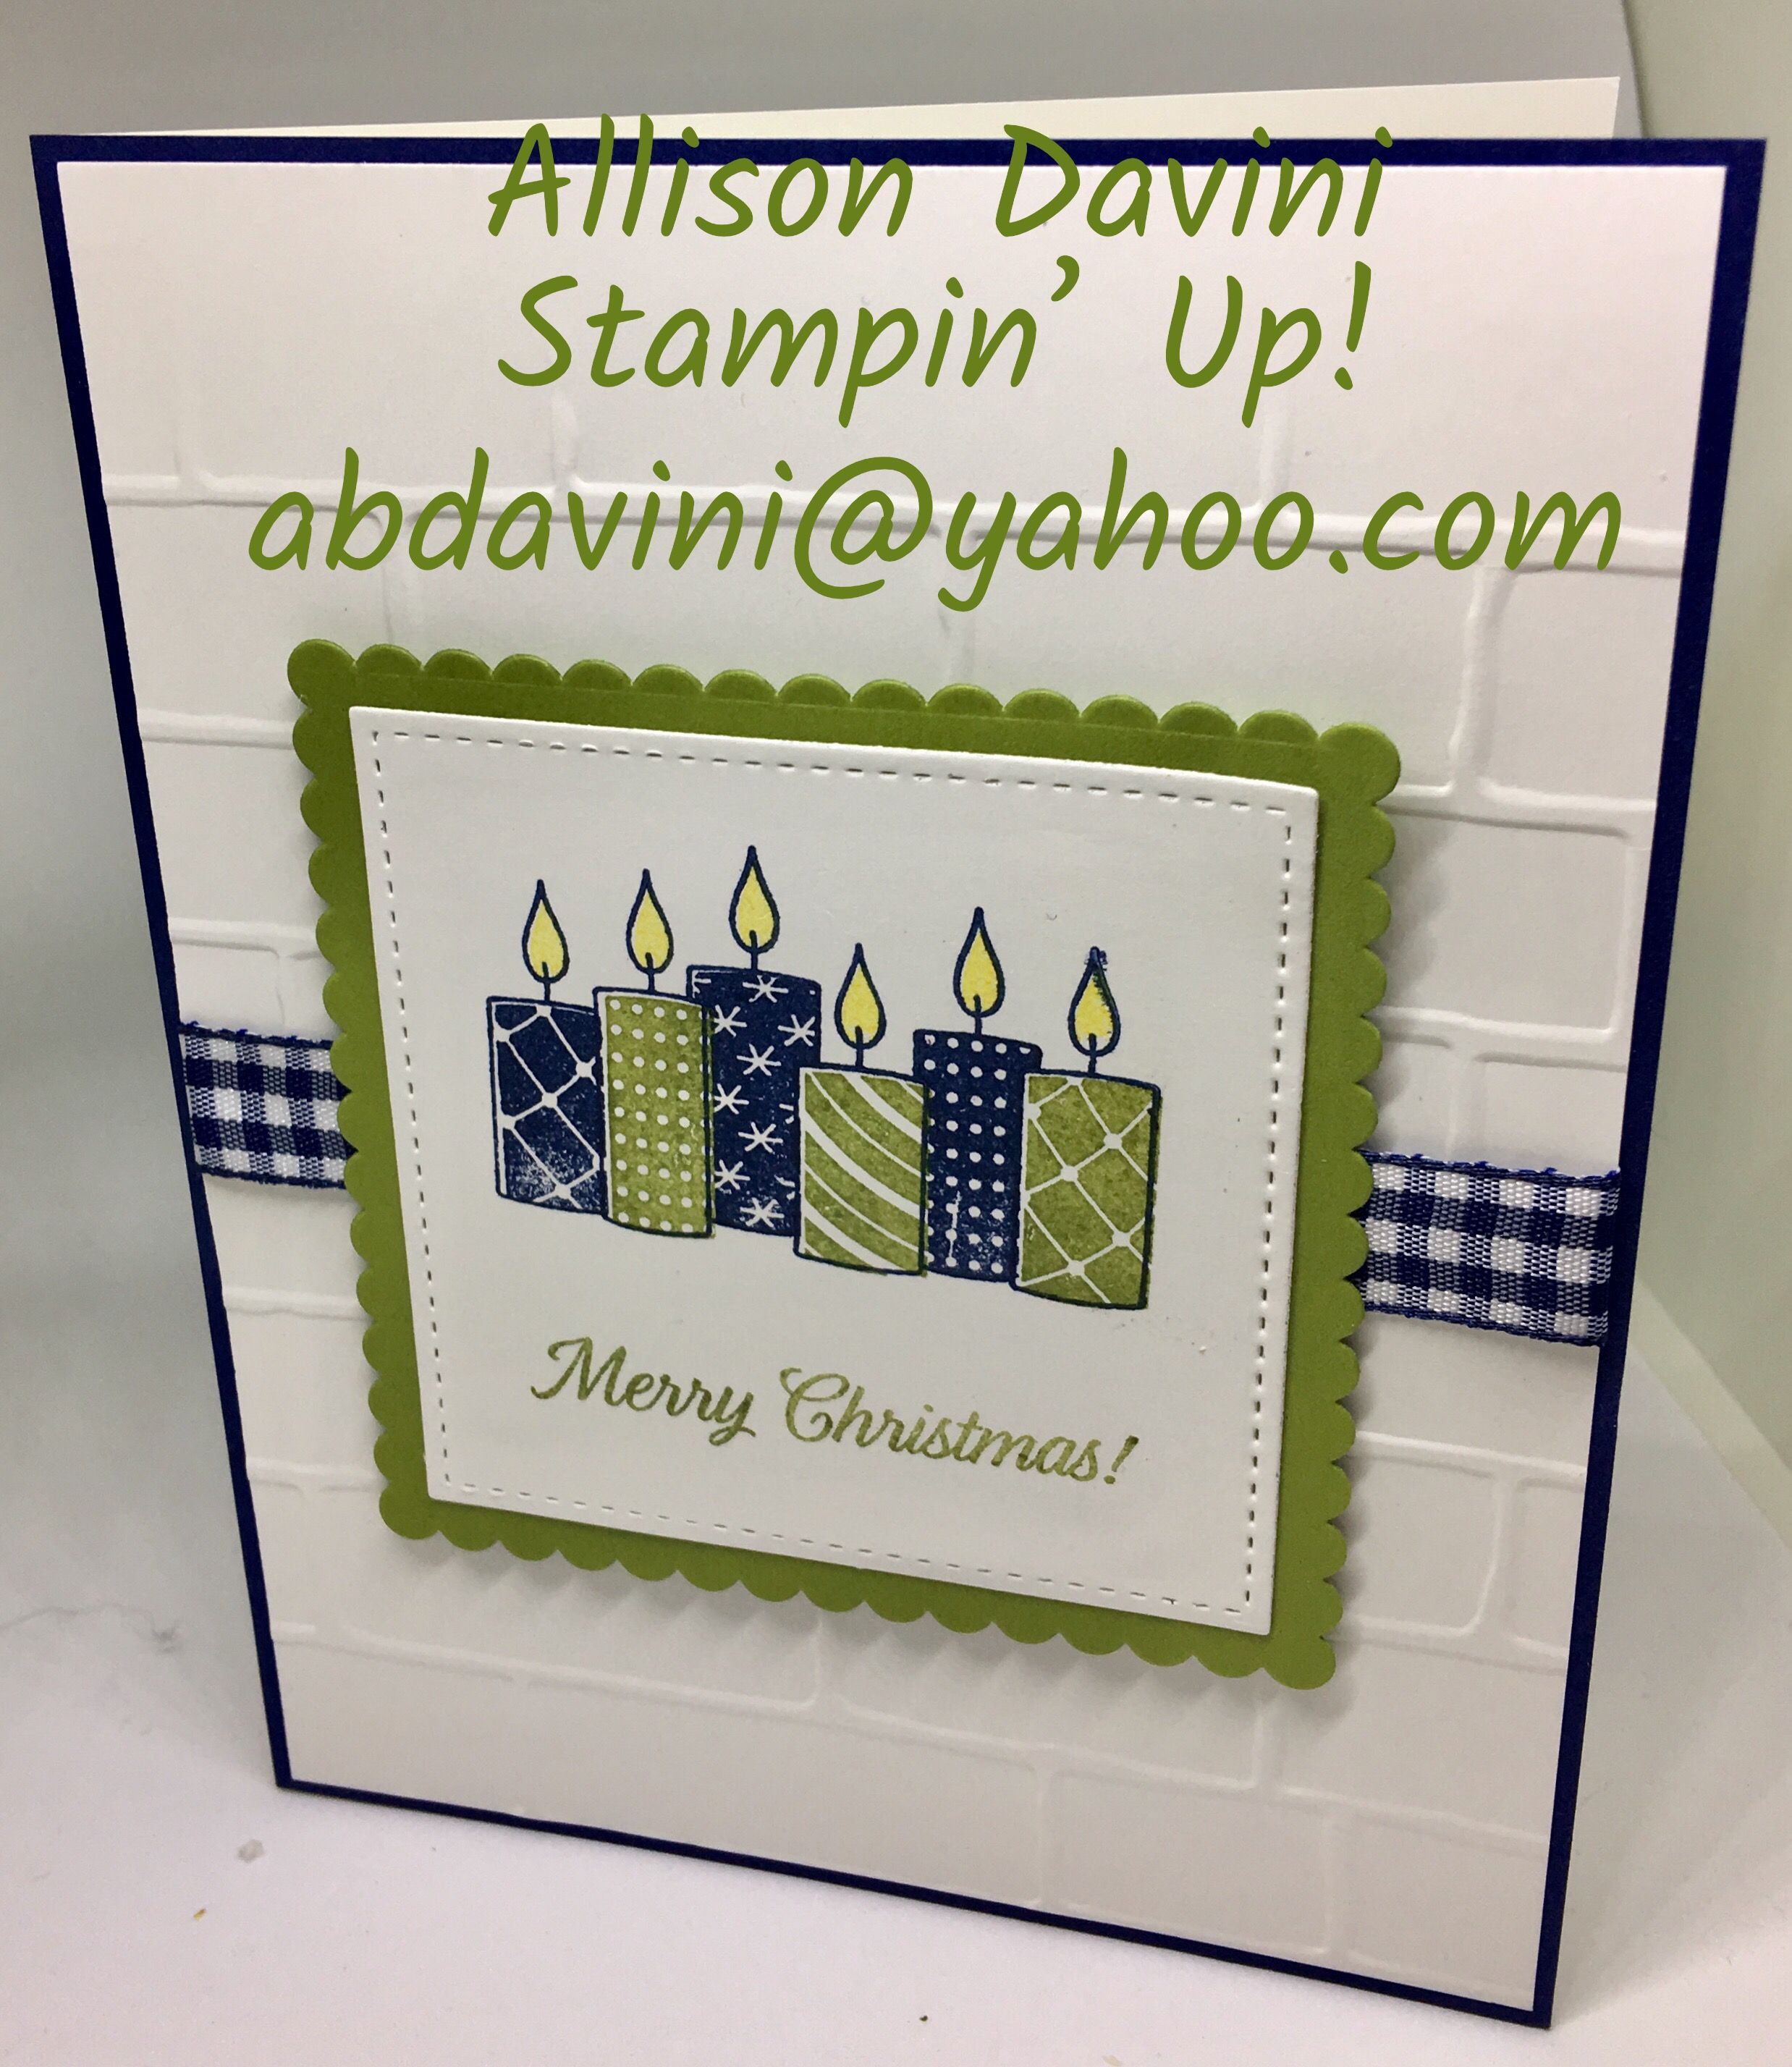 Pin by allison davini on allisons creative greetings pinterest paper bag crafts paper bags christmas catalogs xmas crafts winter cards holiday christmas cards patterns merry kristyandbryce Choice Image